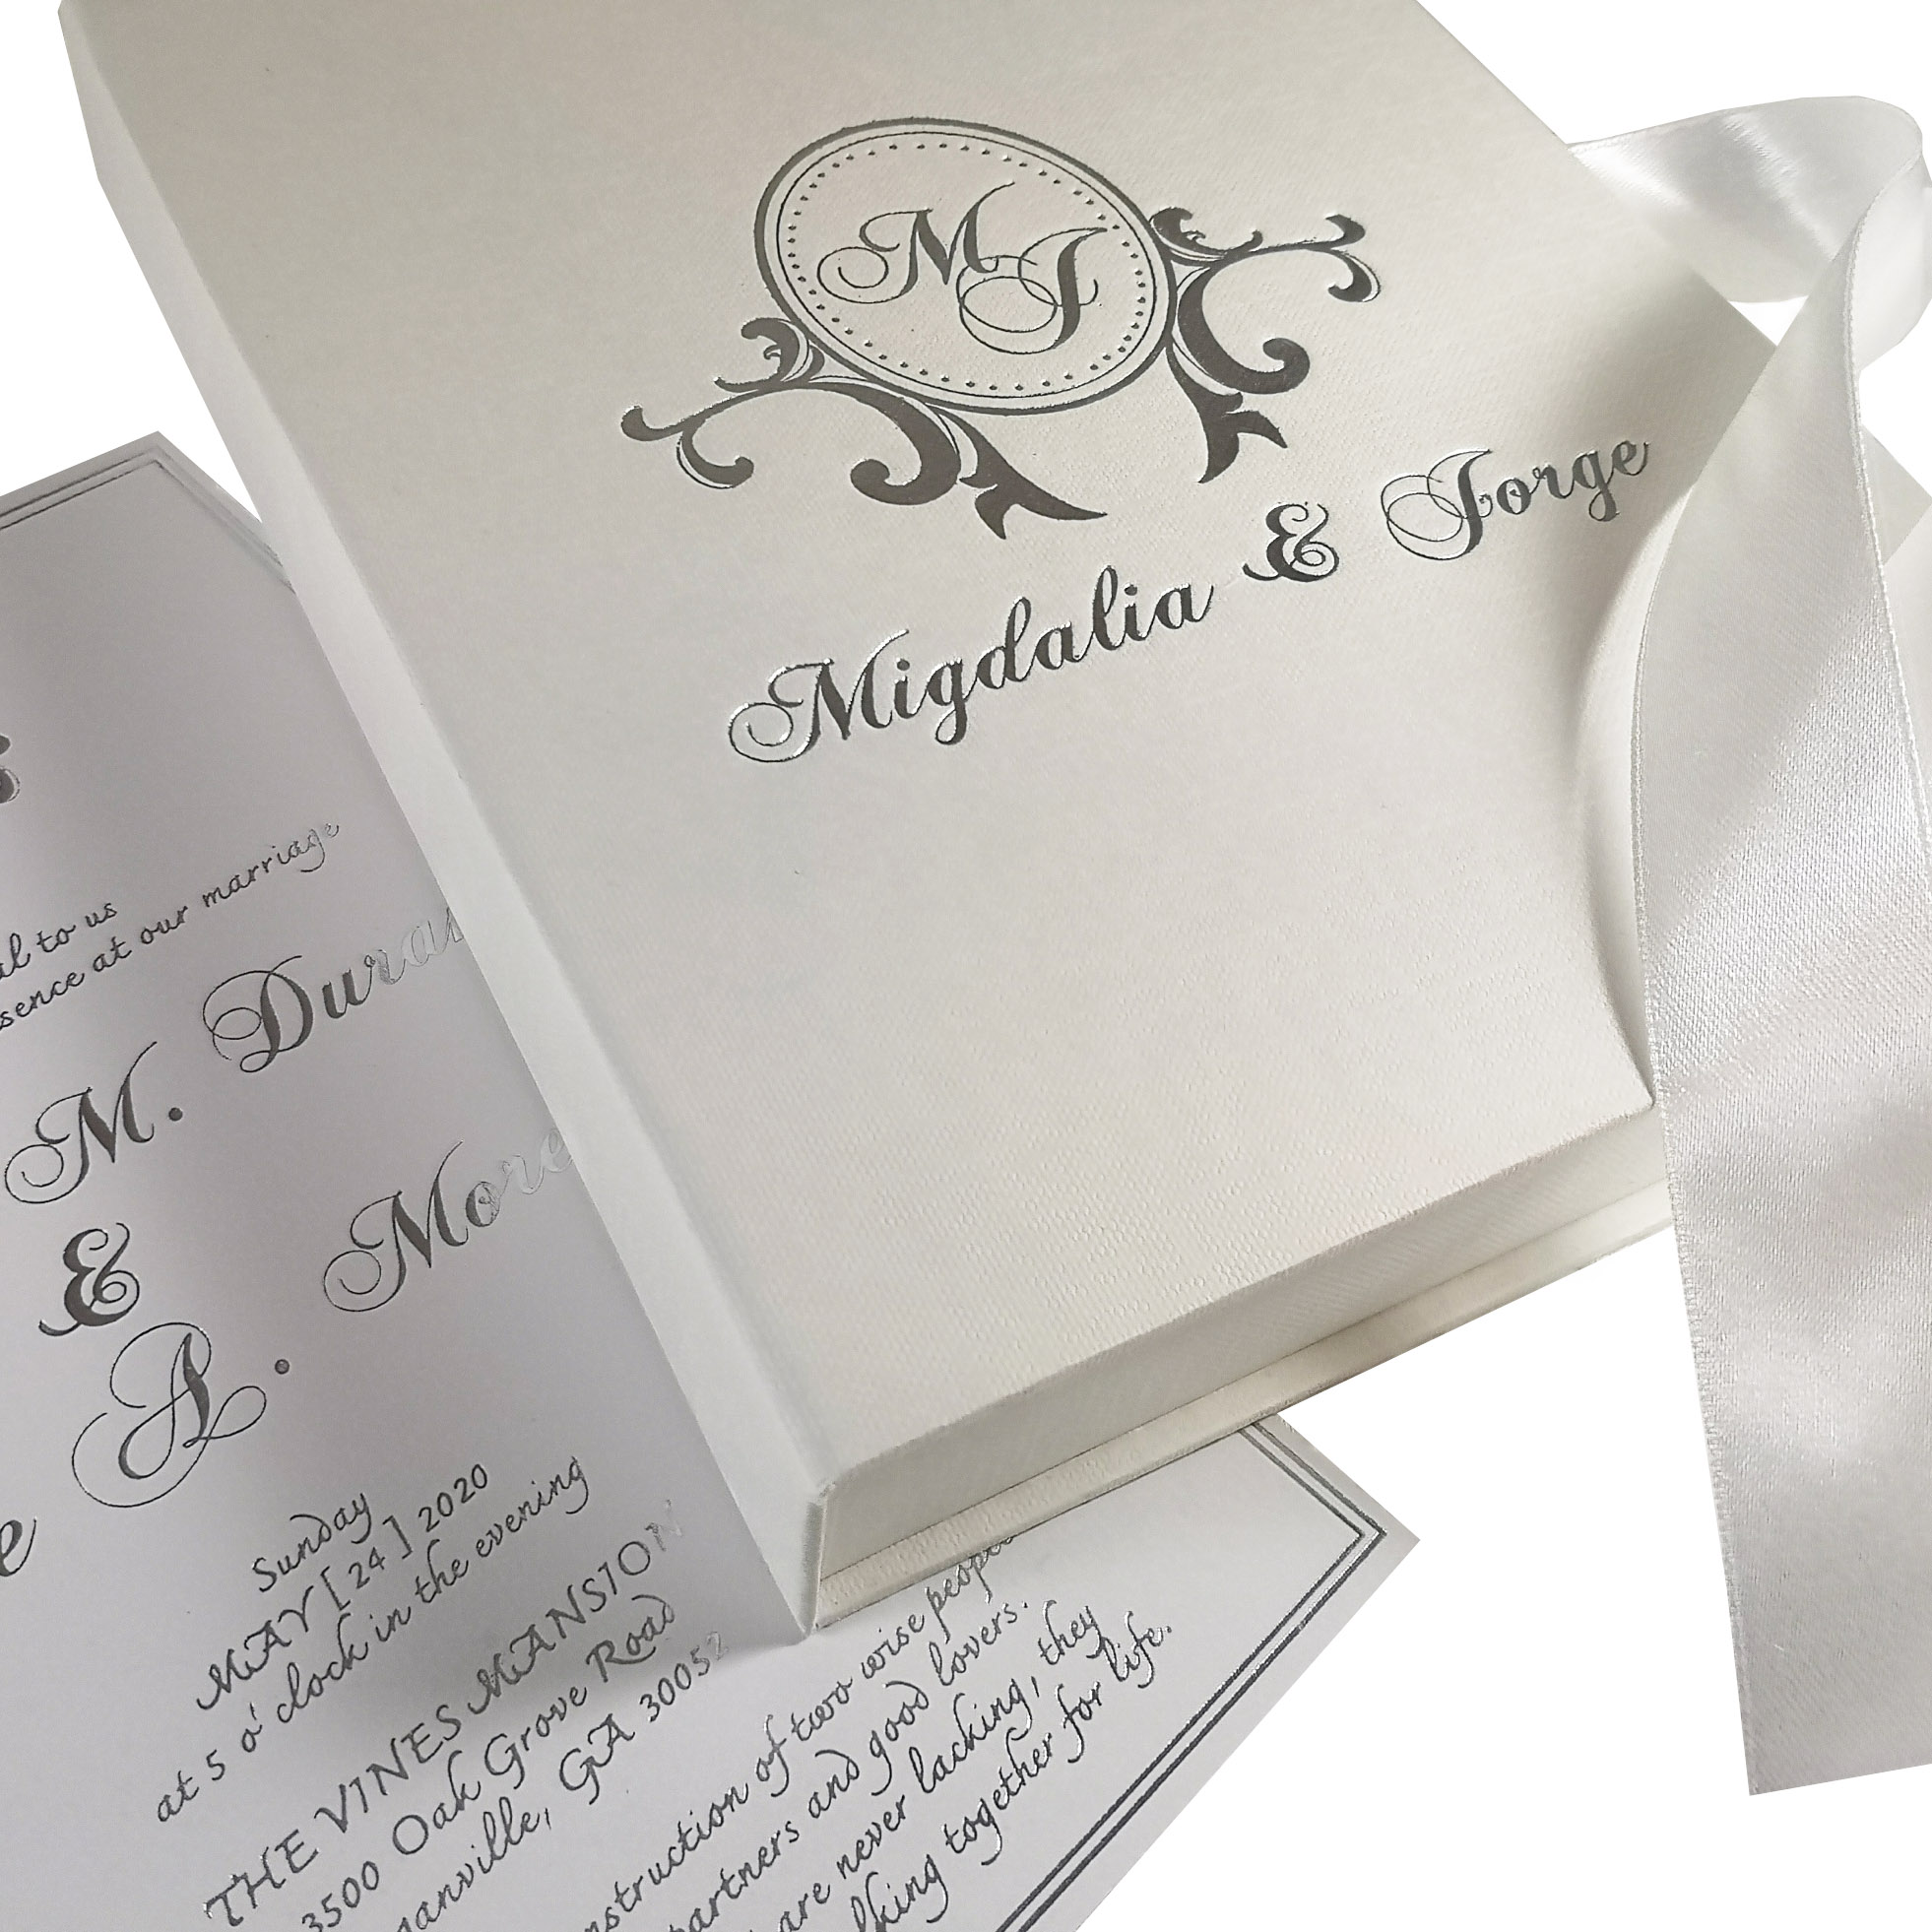 Monogram boxed wedding invitation